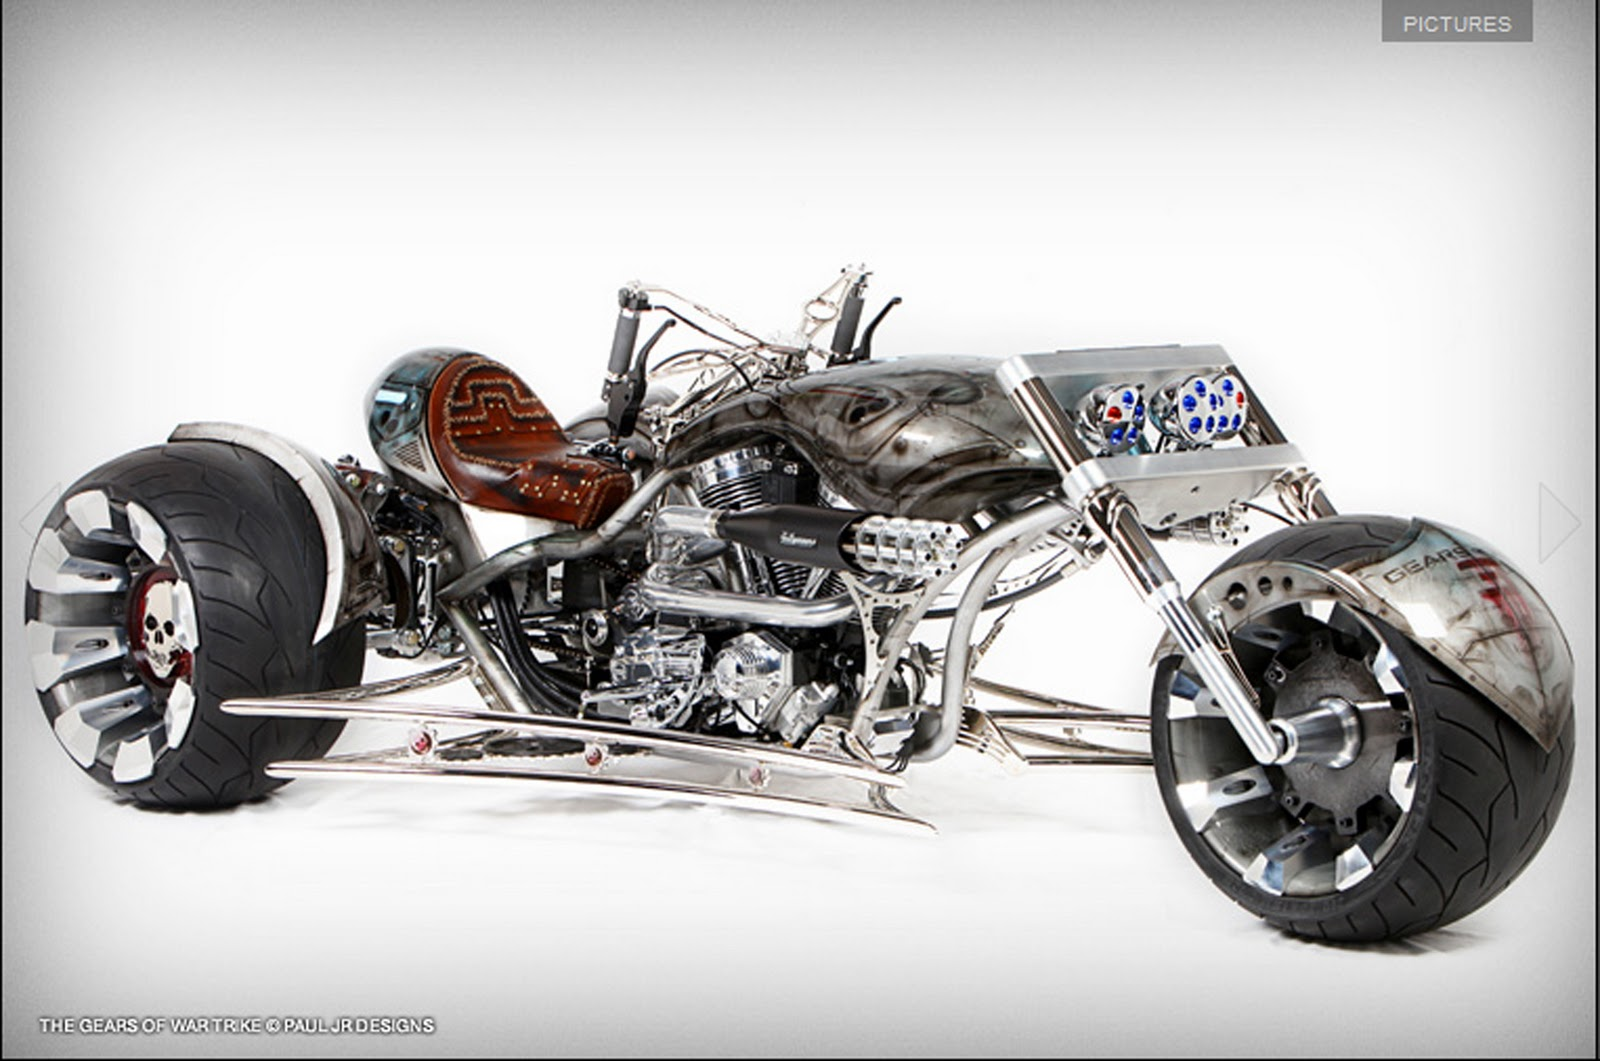 show the futuristic Gears Of War 3 Trike, contrived by Paul Jr Designs